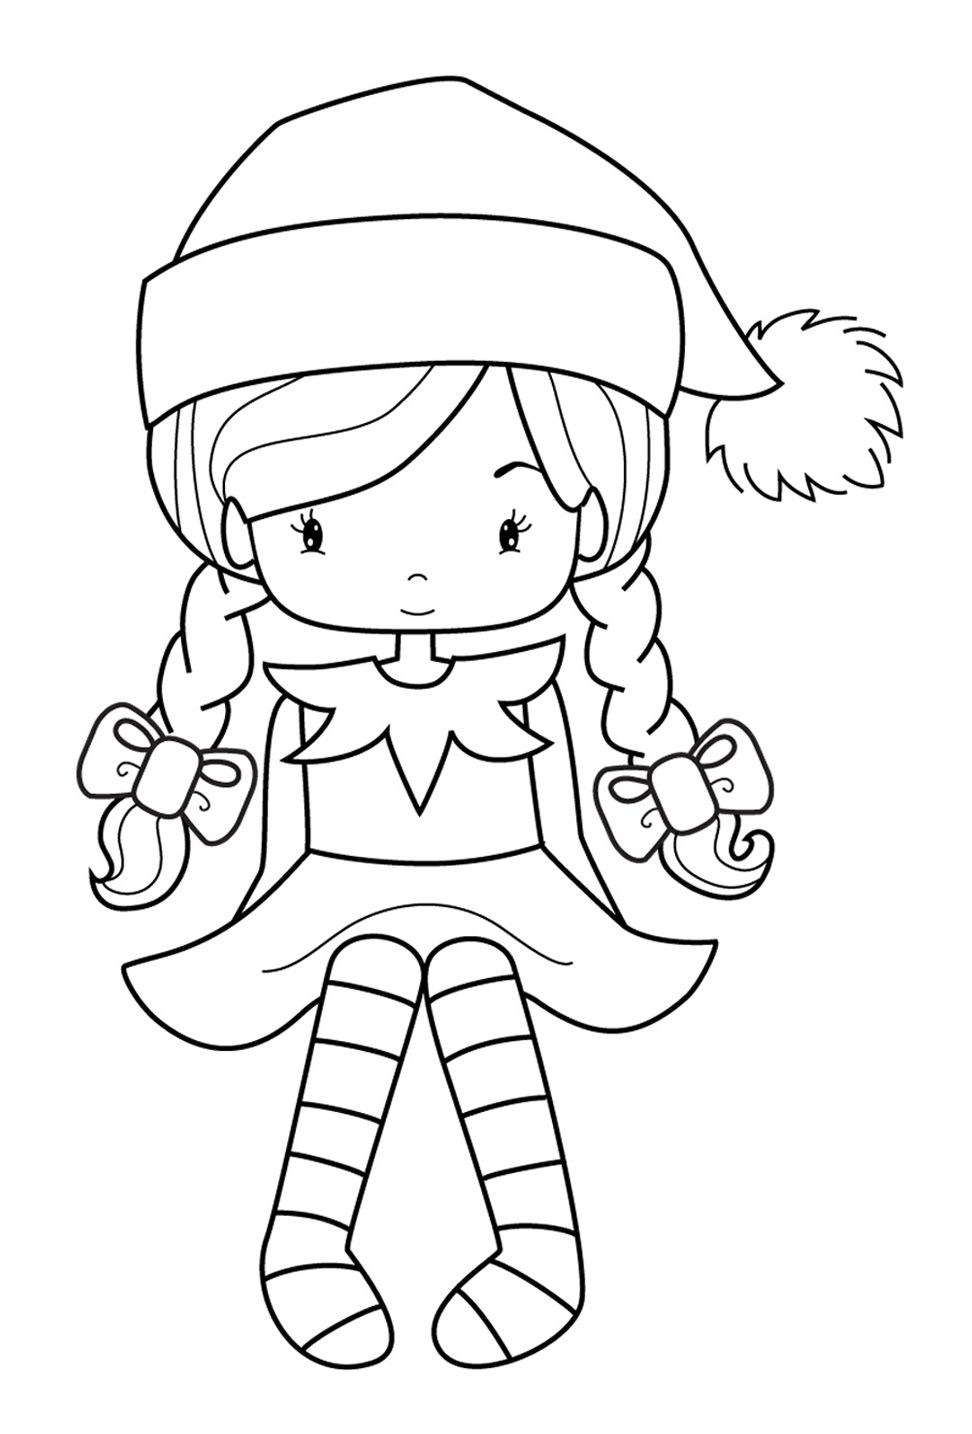 elf christmas coloring pages elveswatchinggirljpg 9721434 christmas printables pages elf coloring christmas